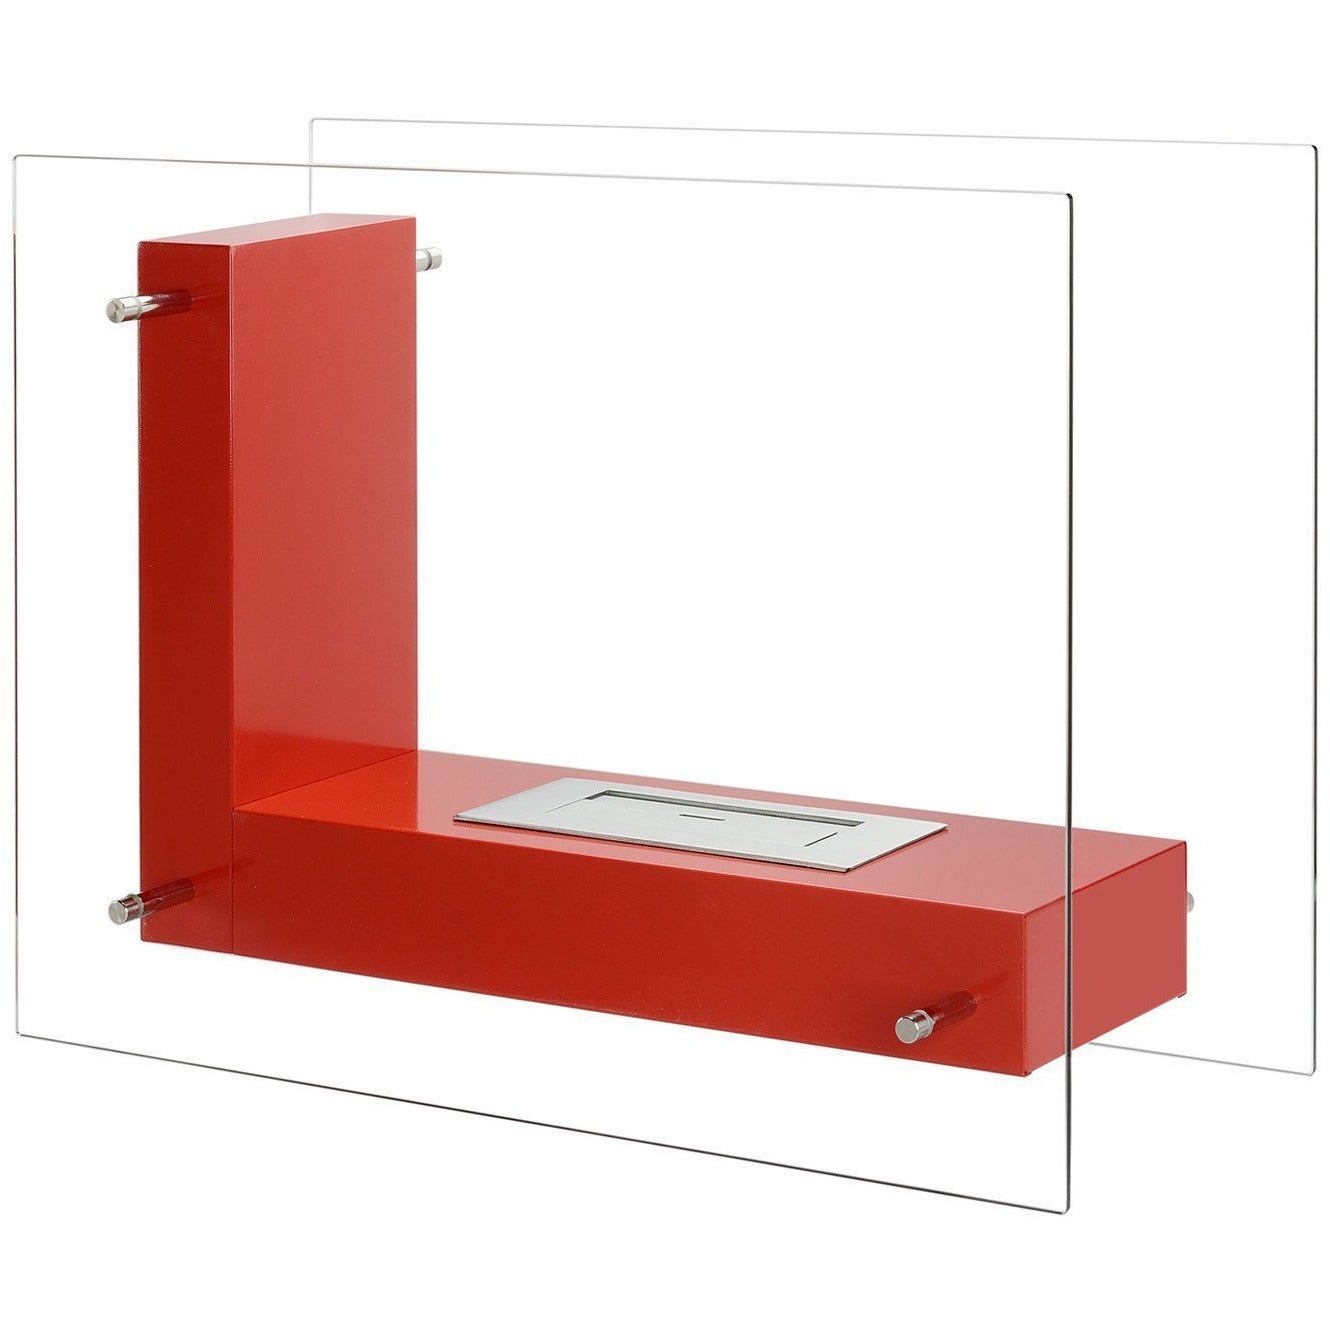 "Ethanol Fireplace - Ignis Vitrum L Red - 32"" Free Standing Ethanol Fireplace, In/Outdoor (FSF-005R)"